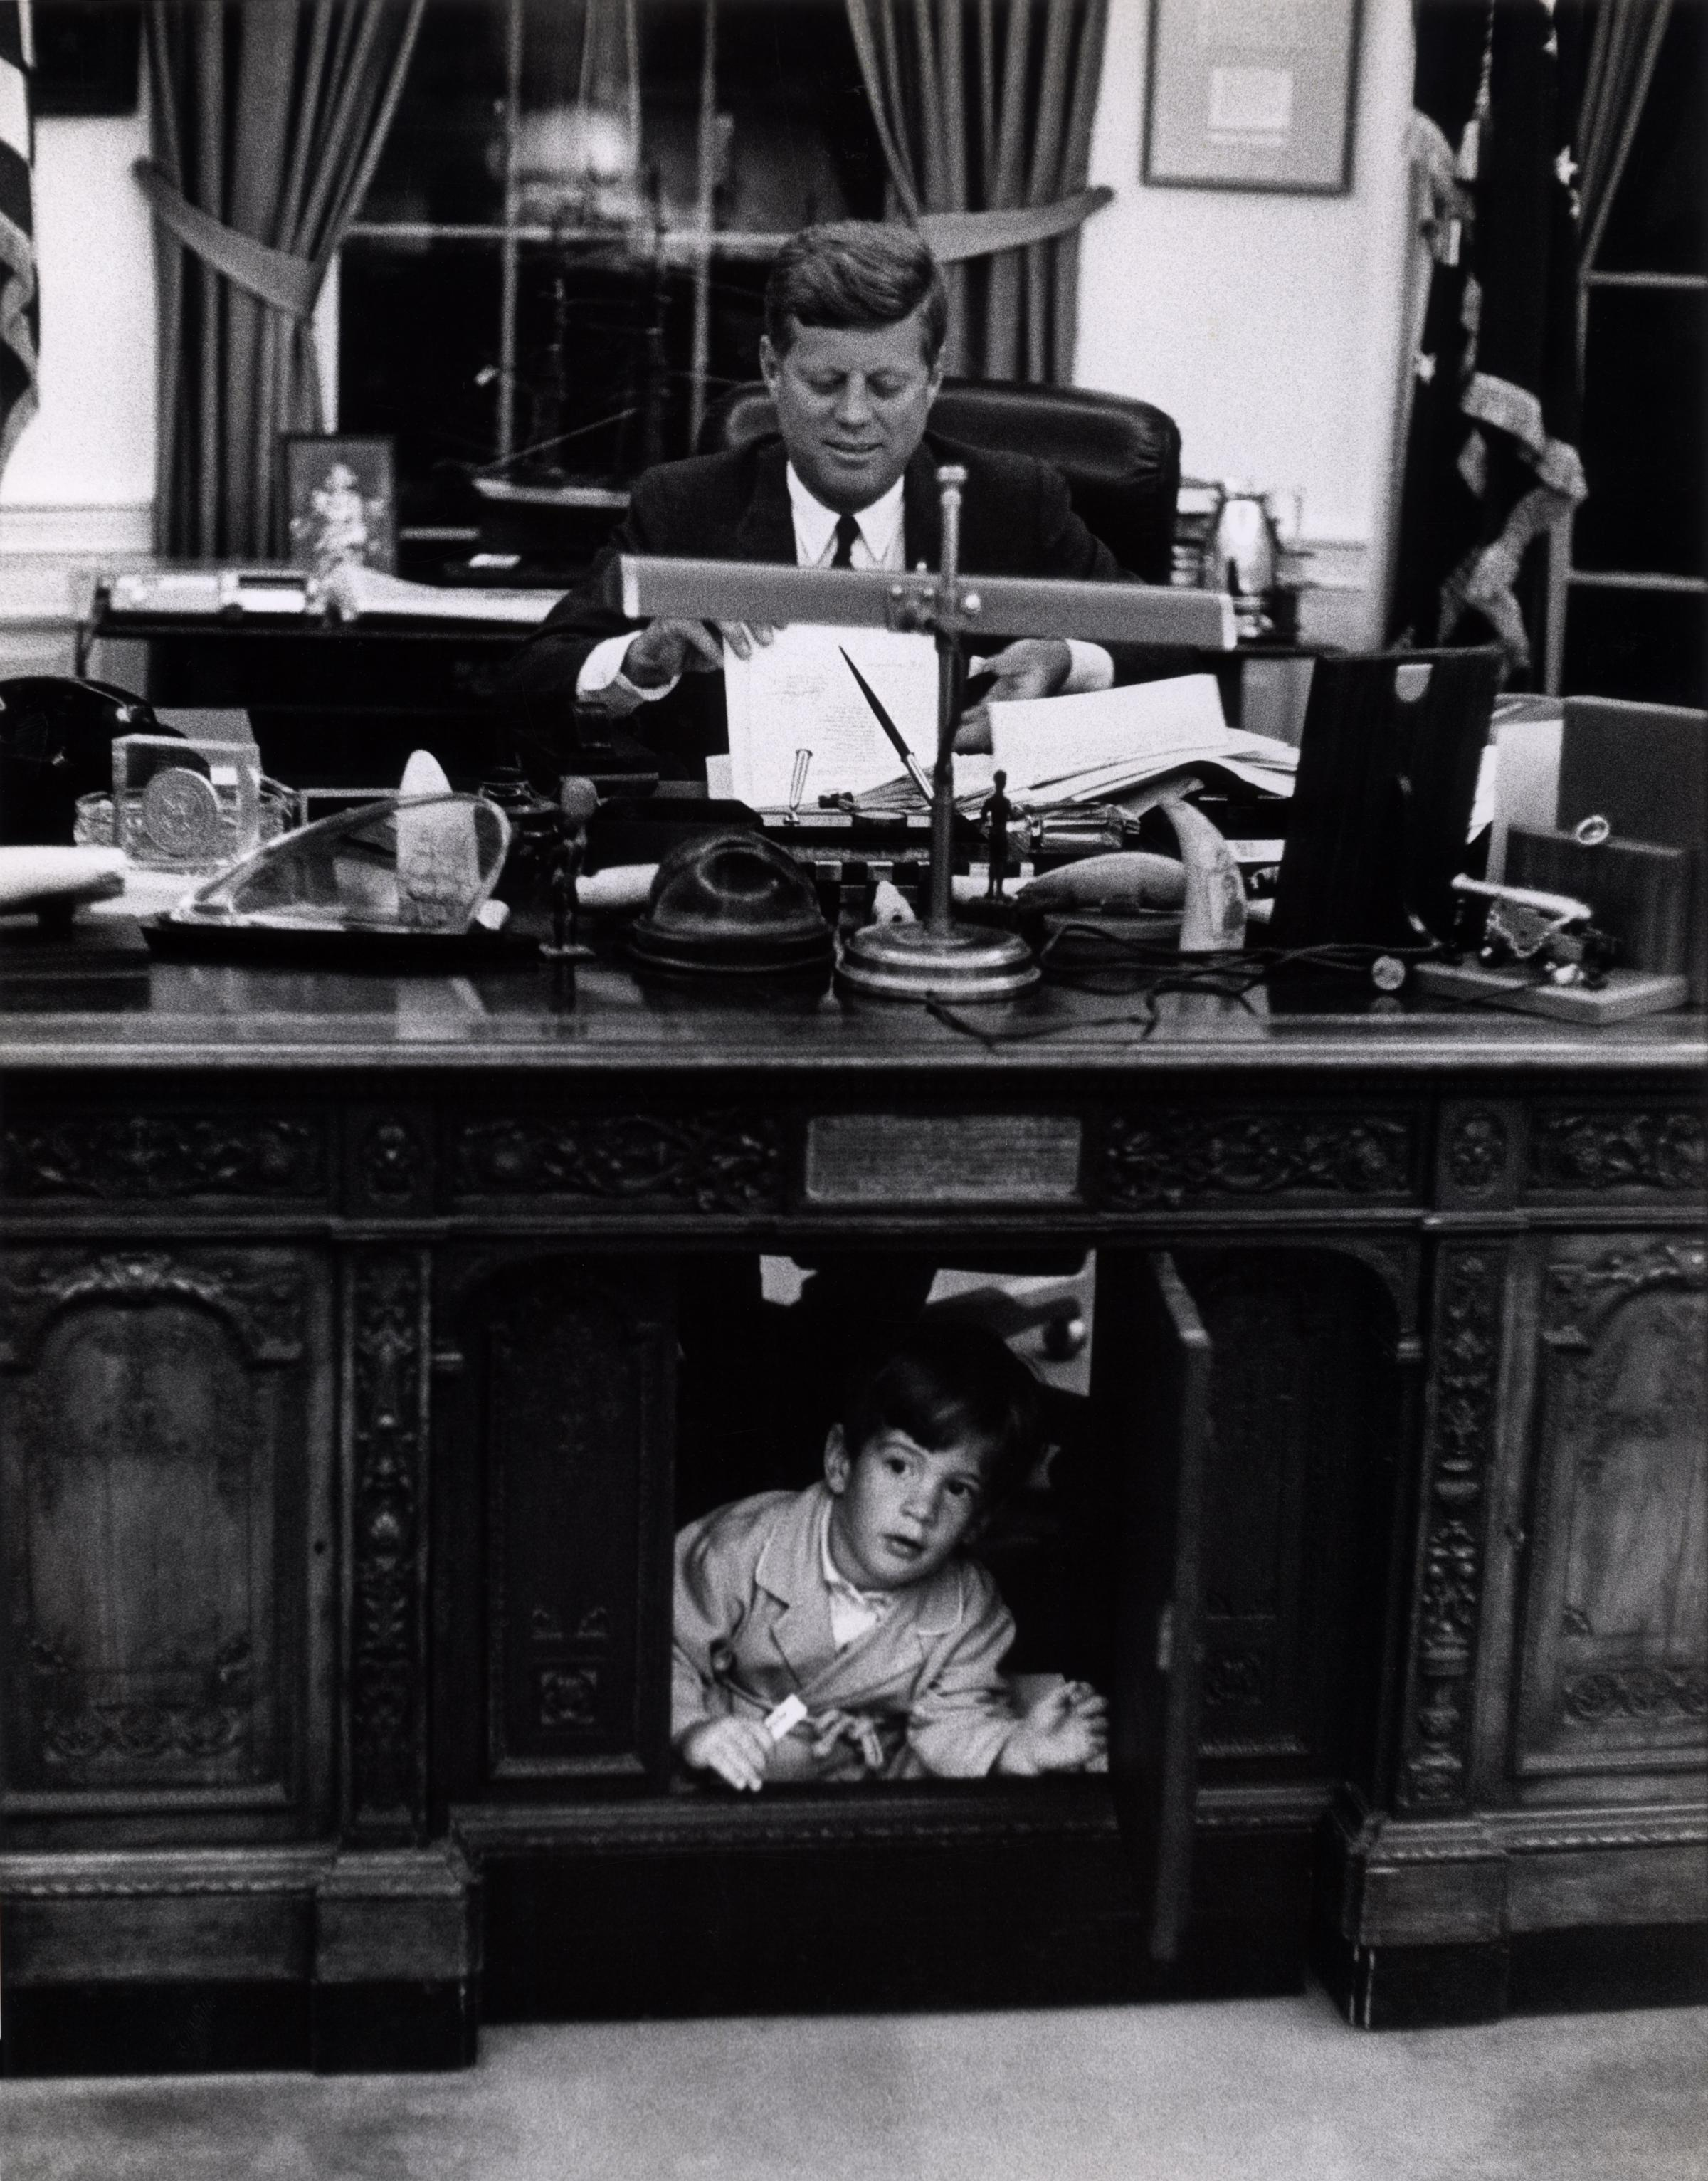 Jfk Oval Office The Kennedys Capturing America S Camelot Wwno